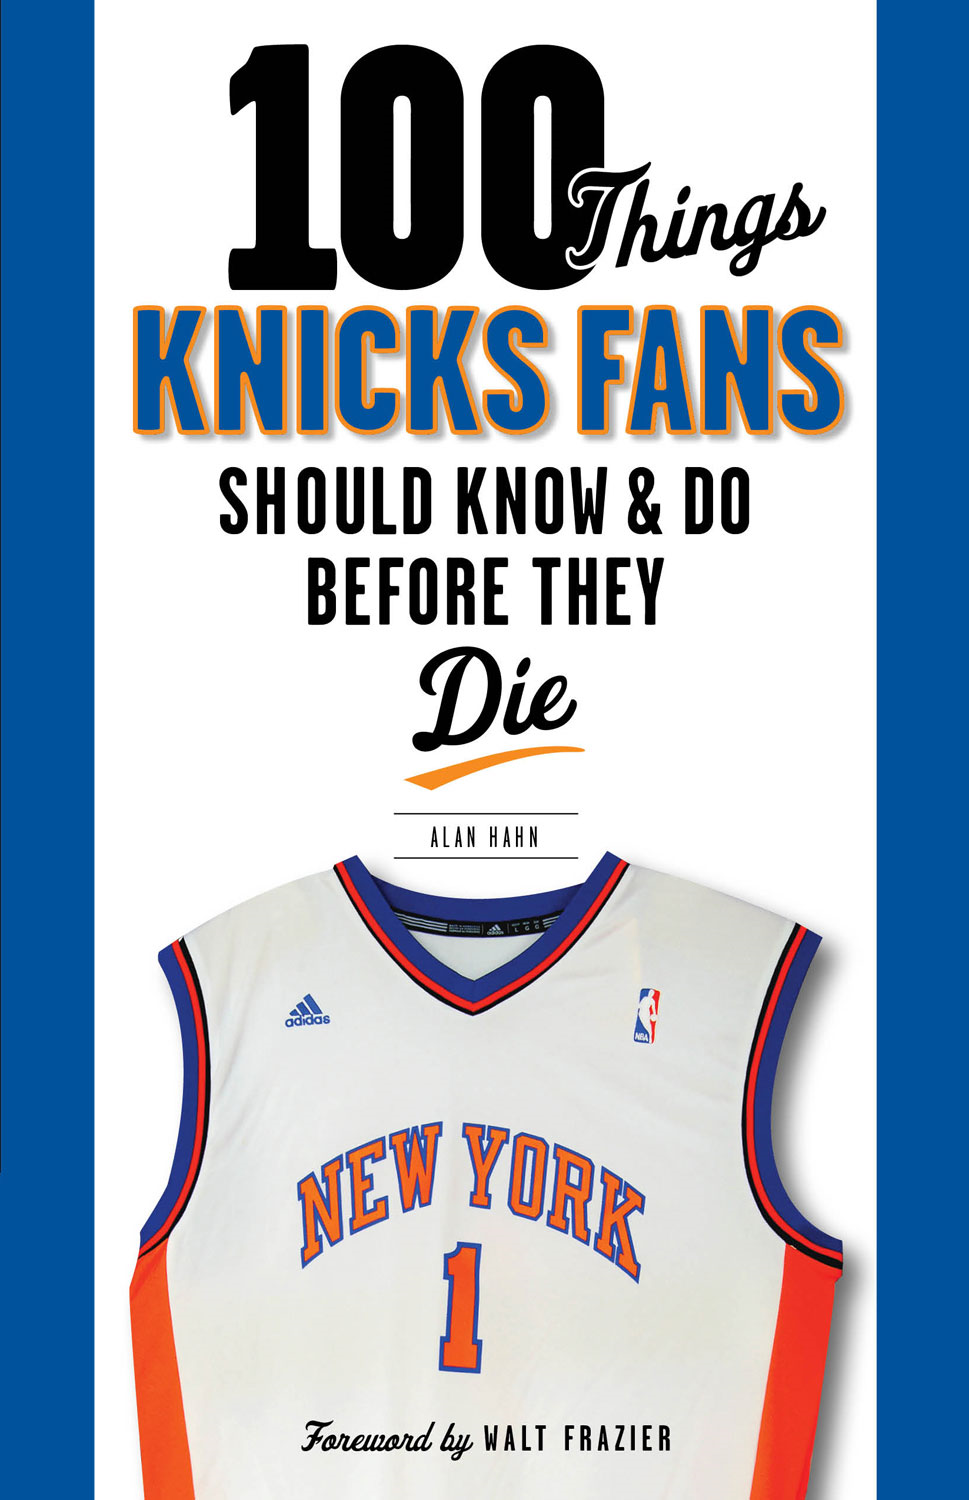 100 Things Knicks Fans Should Know & Do Before They Die By: Alan Hahn